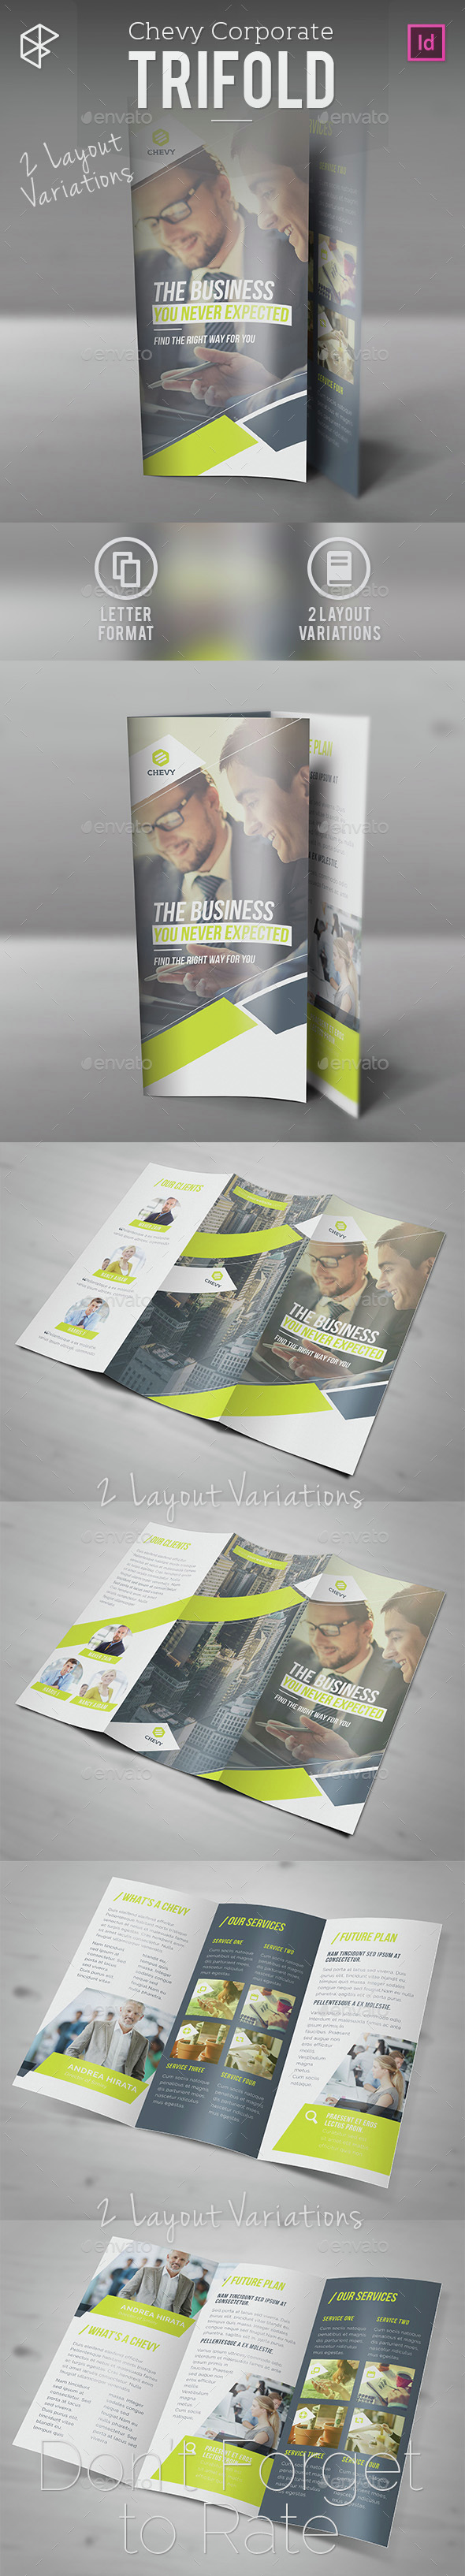 Chevy Corporate Trifold - Corporate Brochures